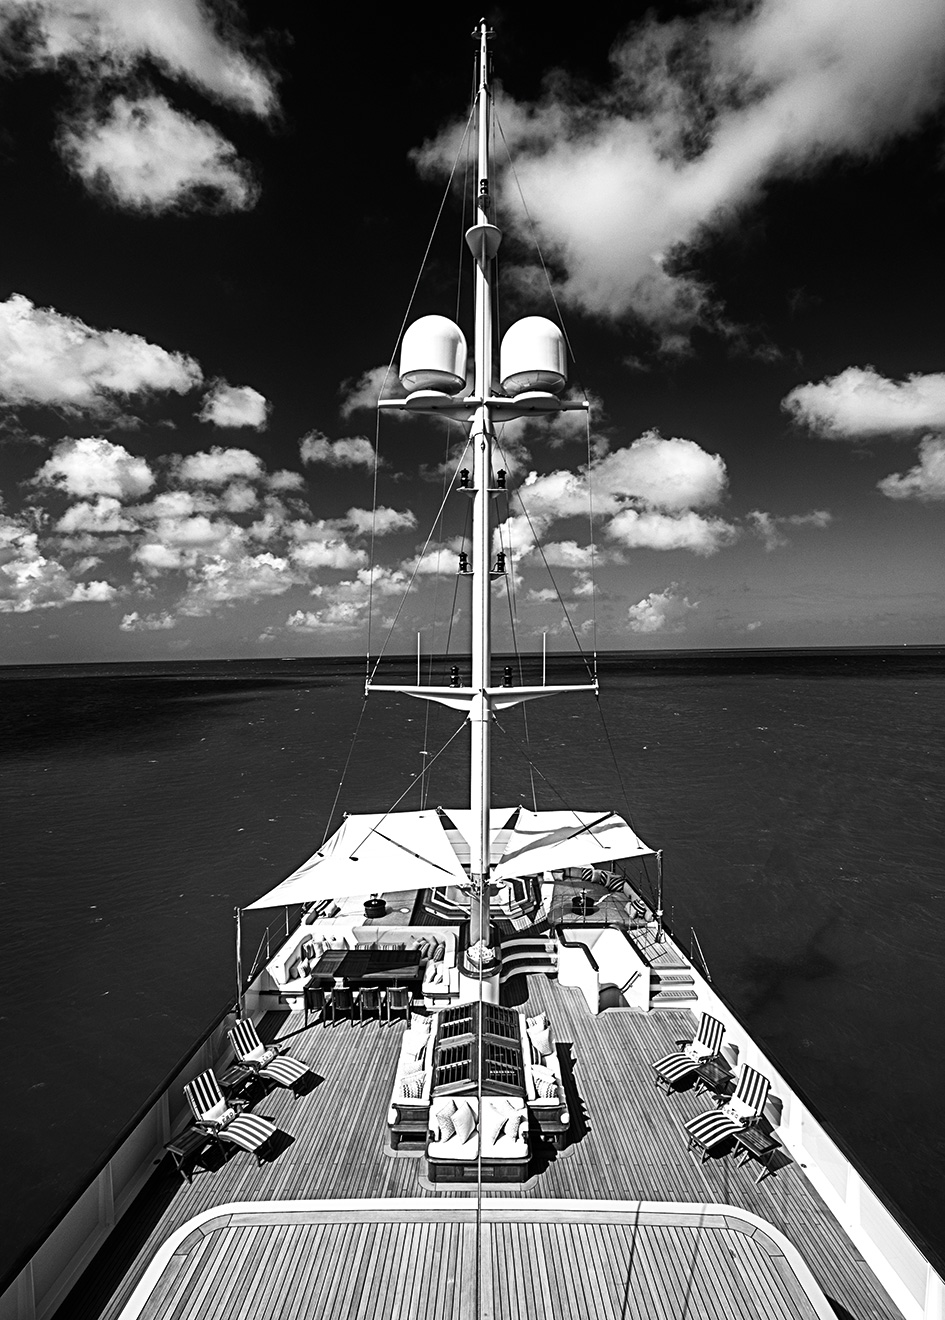 the-mast-of-the-modern-classic-yacht-nero-after-her-mb92-refit-credit-stuart-pearce